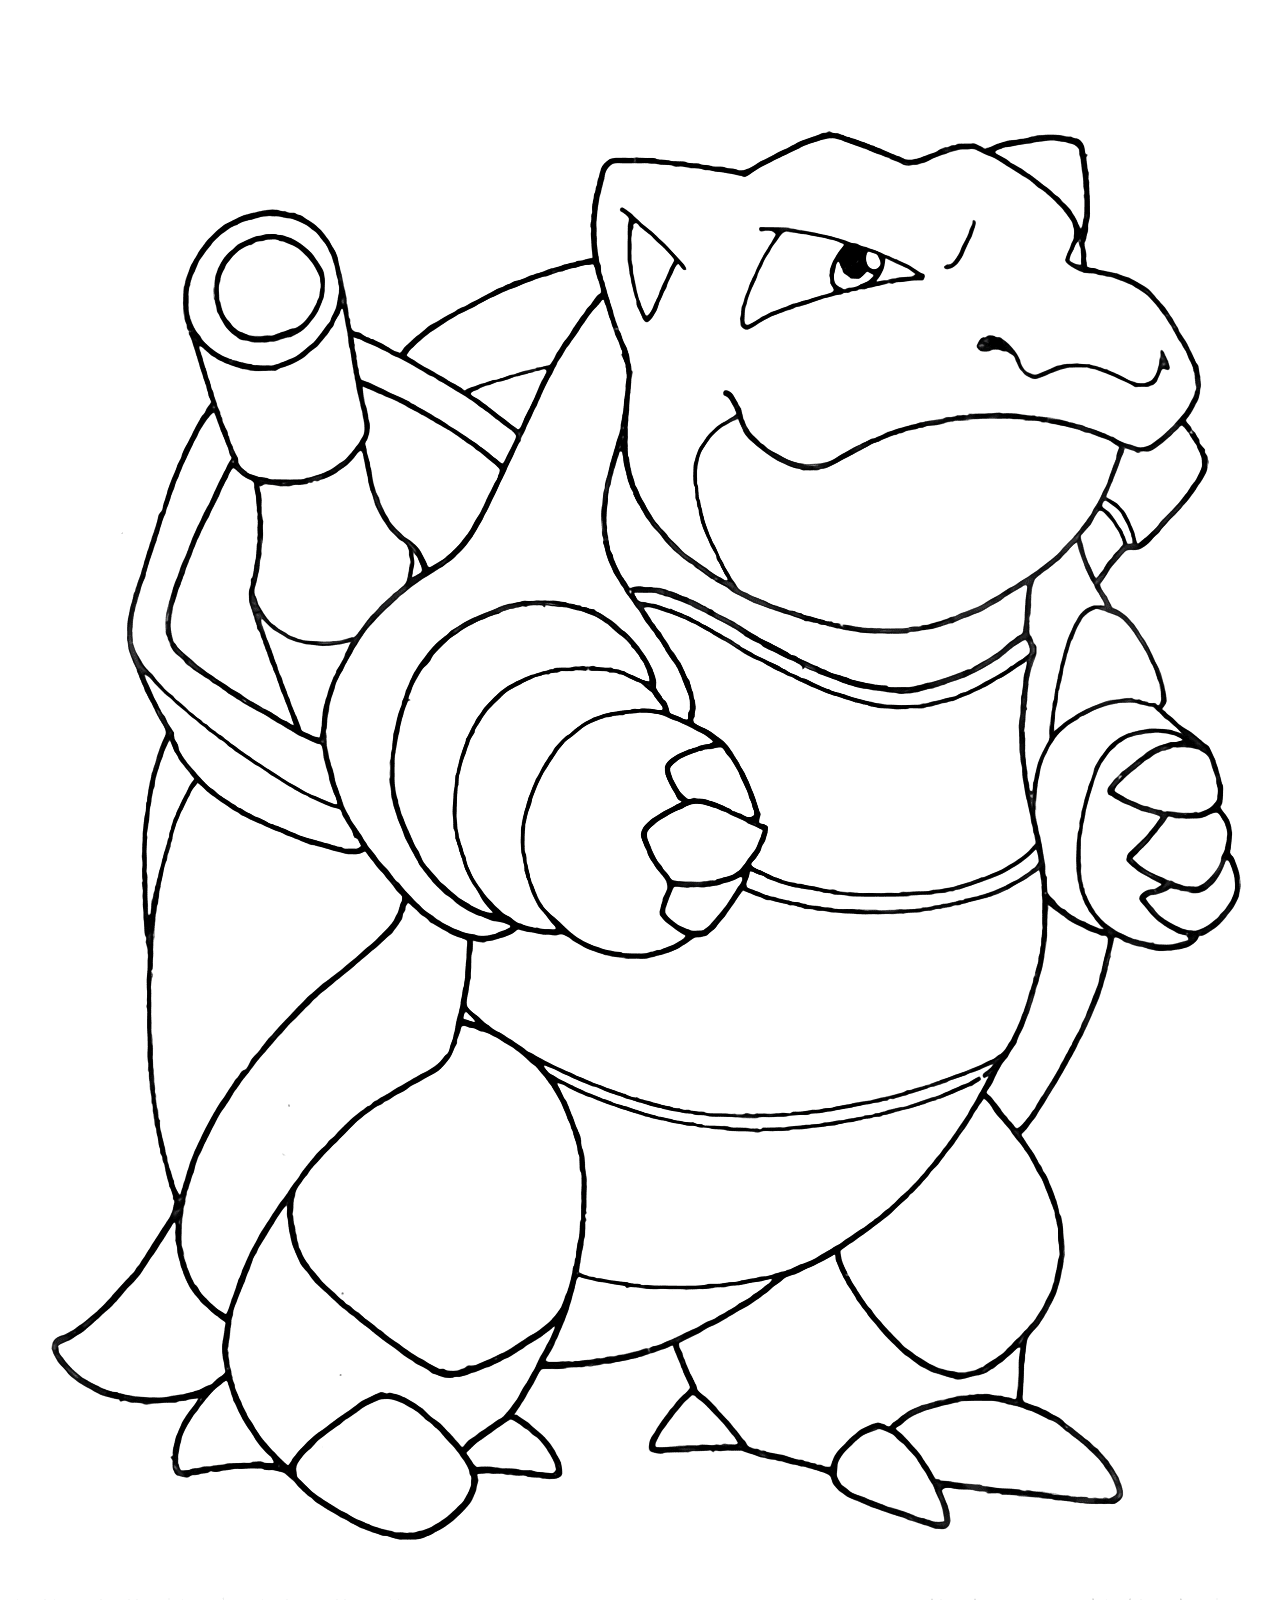 blastoise coloring pages blastoise line art by inetal on deviantart pages blastoise coloring